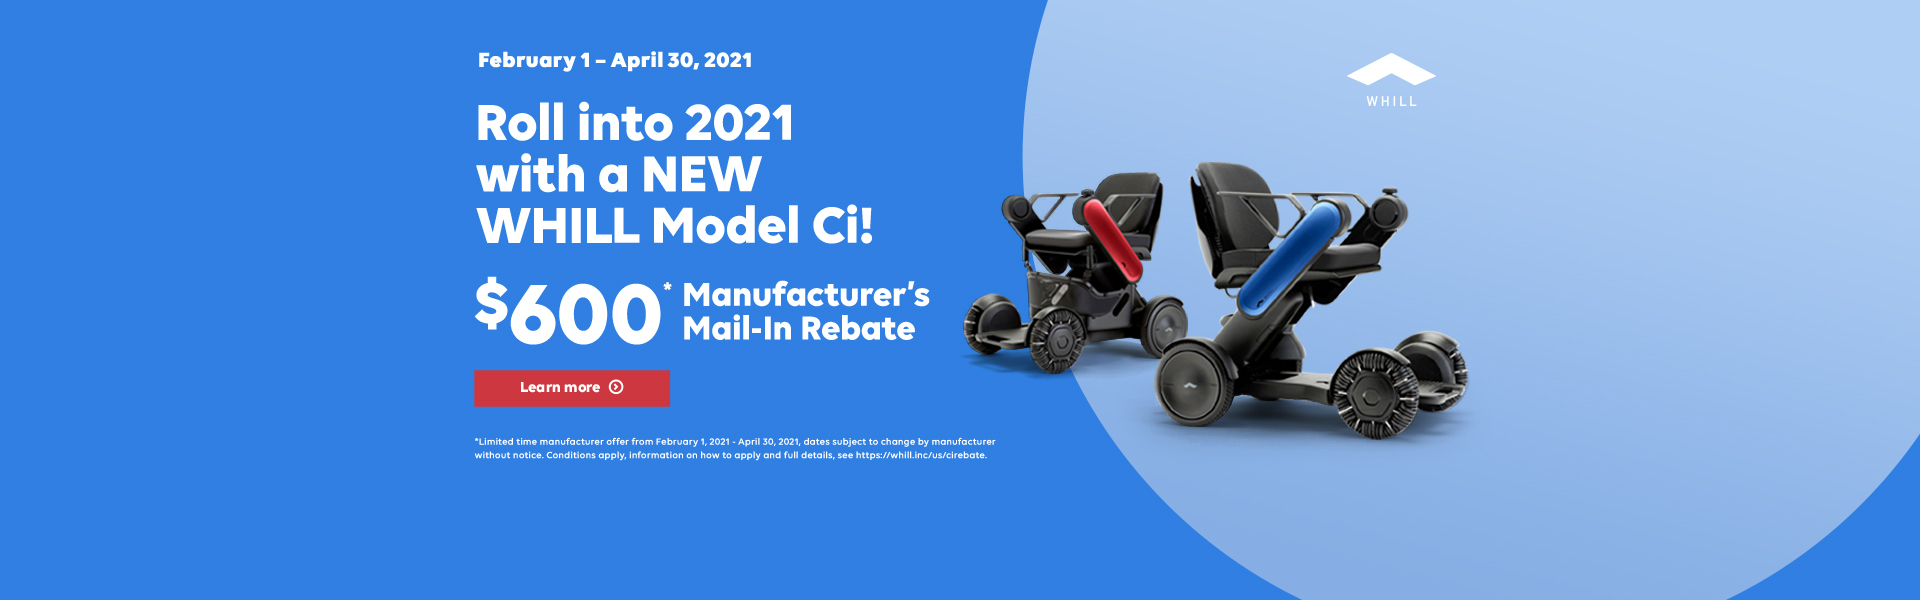 $600 Manufacture's Mail-In Rebate February 1 - April 30, 2021. Roll into 2021 with a NEW WHILL Model Ci.